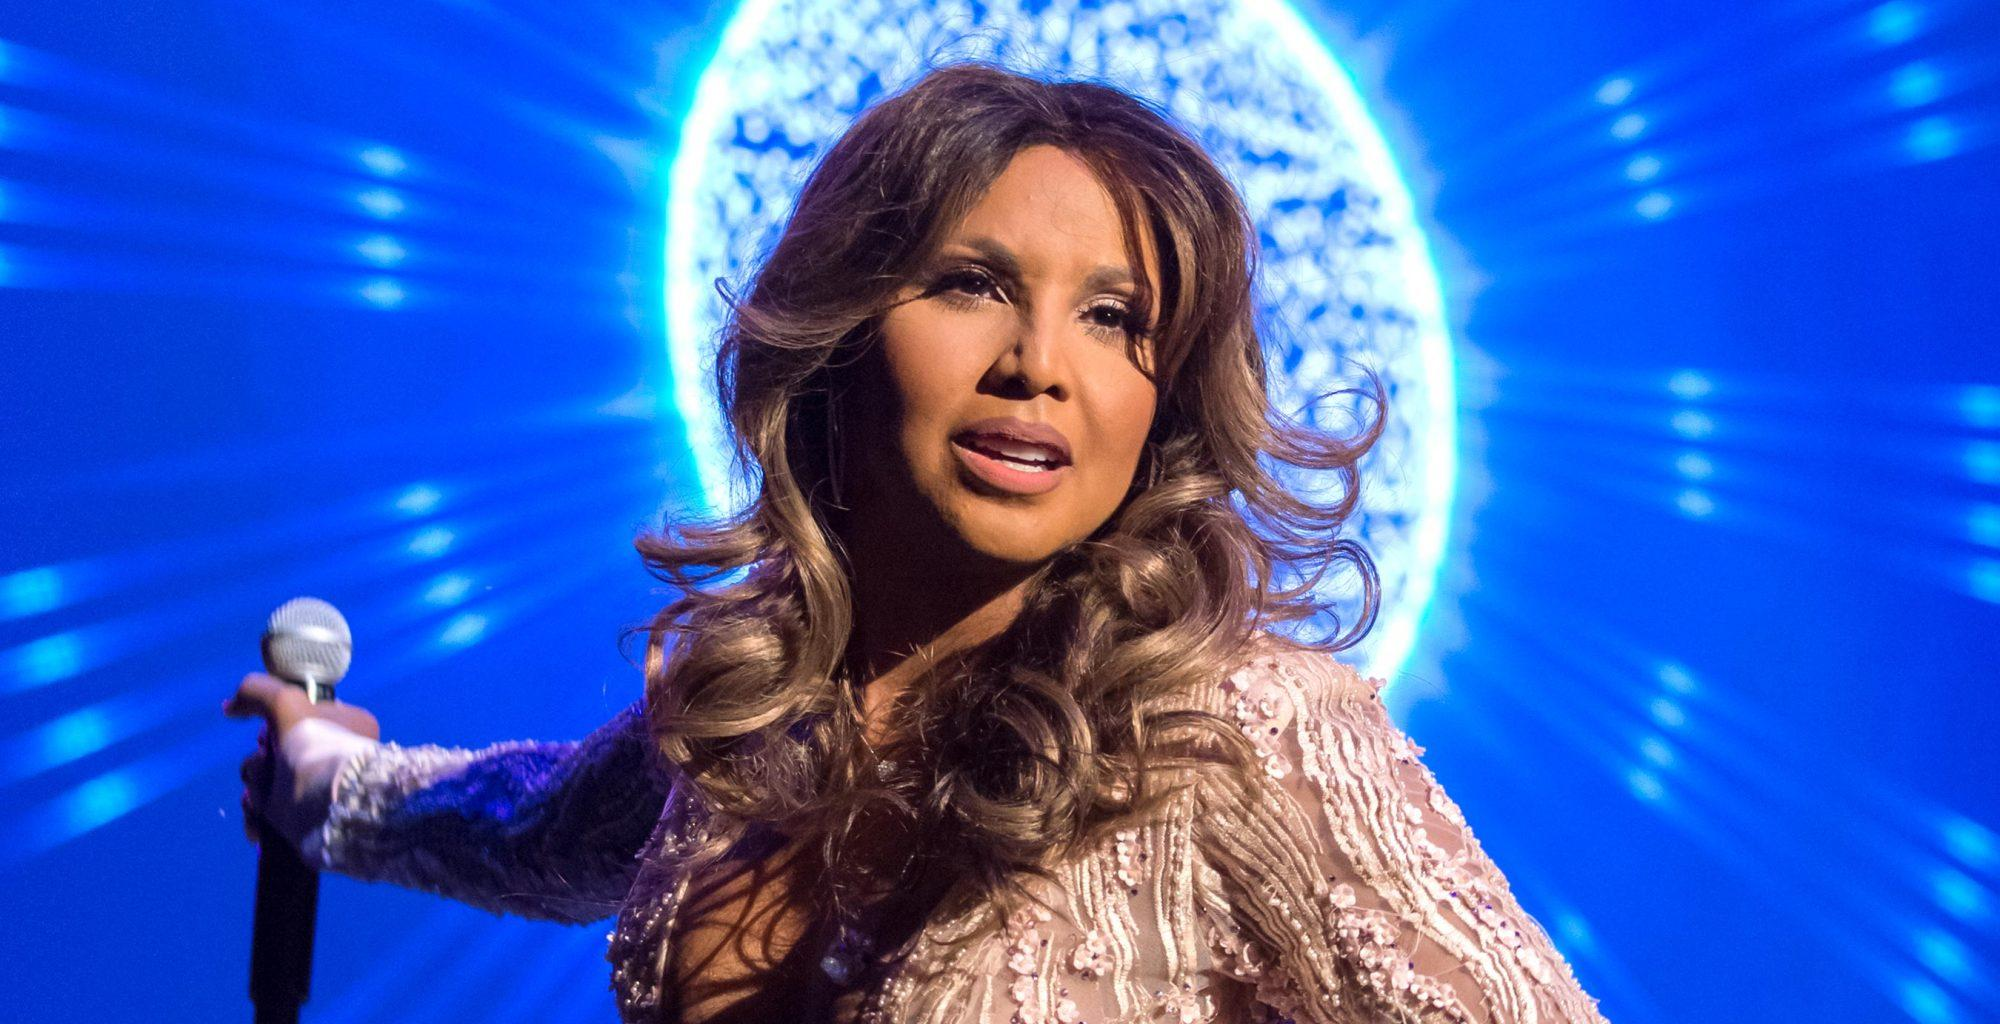 Toni Braxton Finally Drops The Cover Of Harper's Bazaar That She Graces - See Her Photo Here